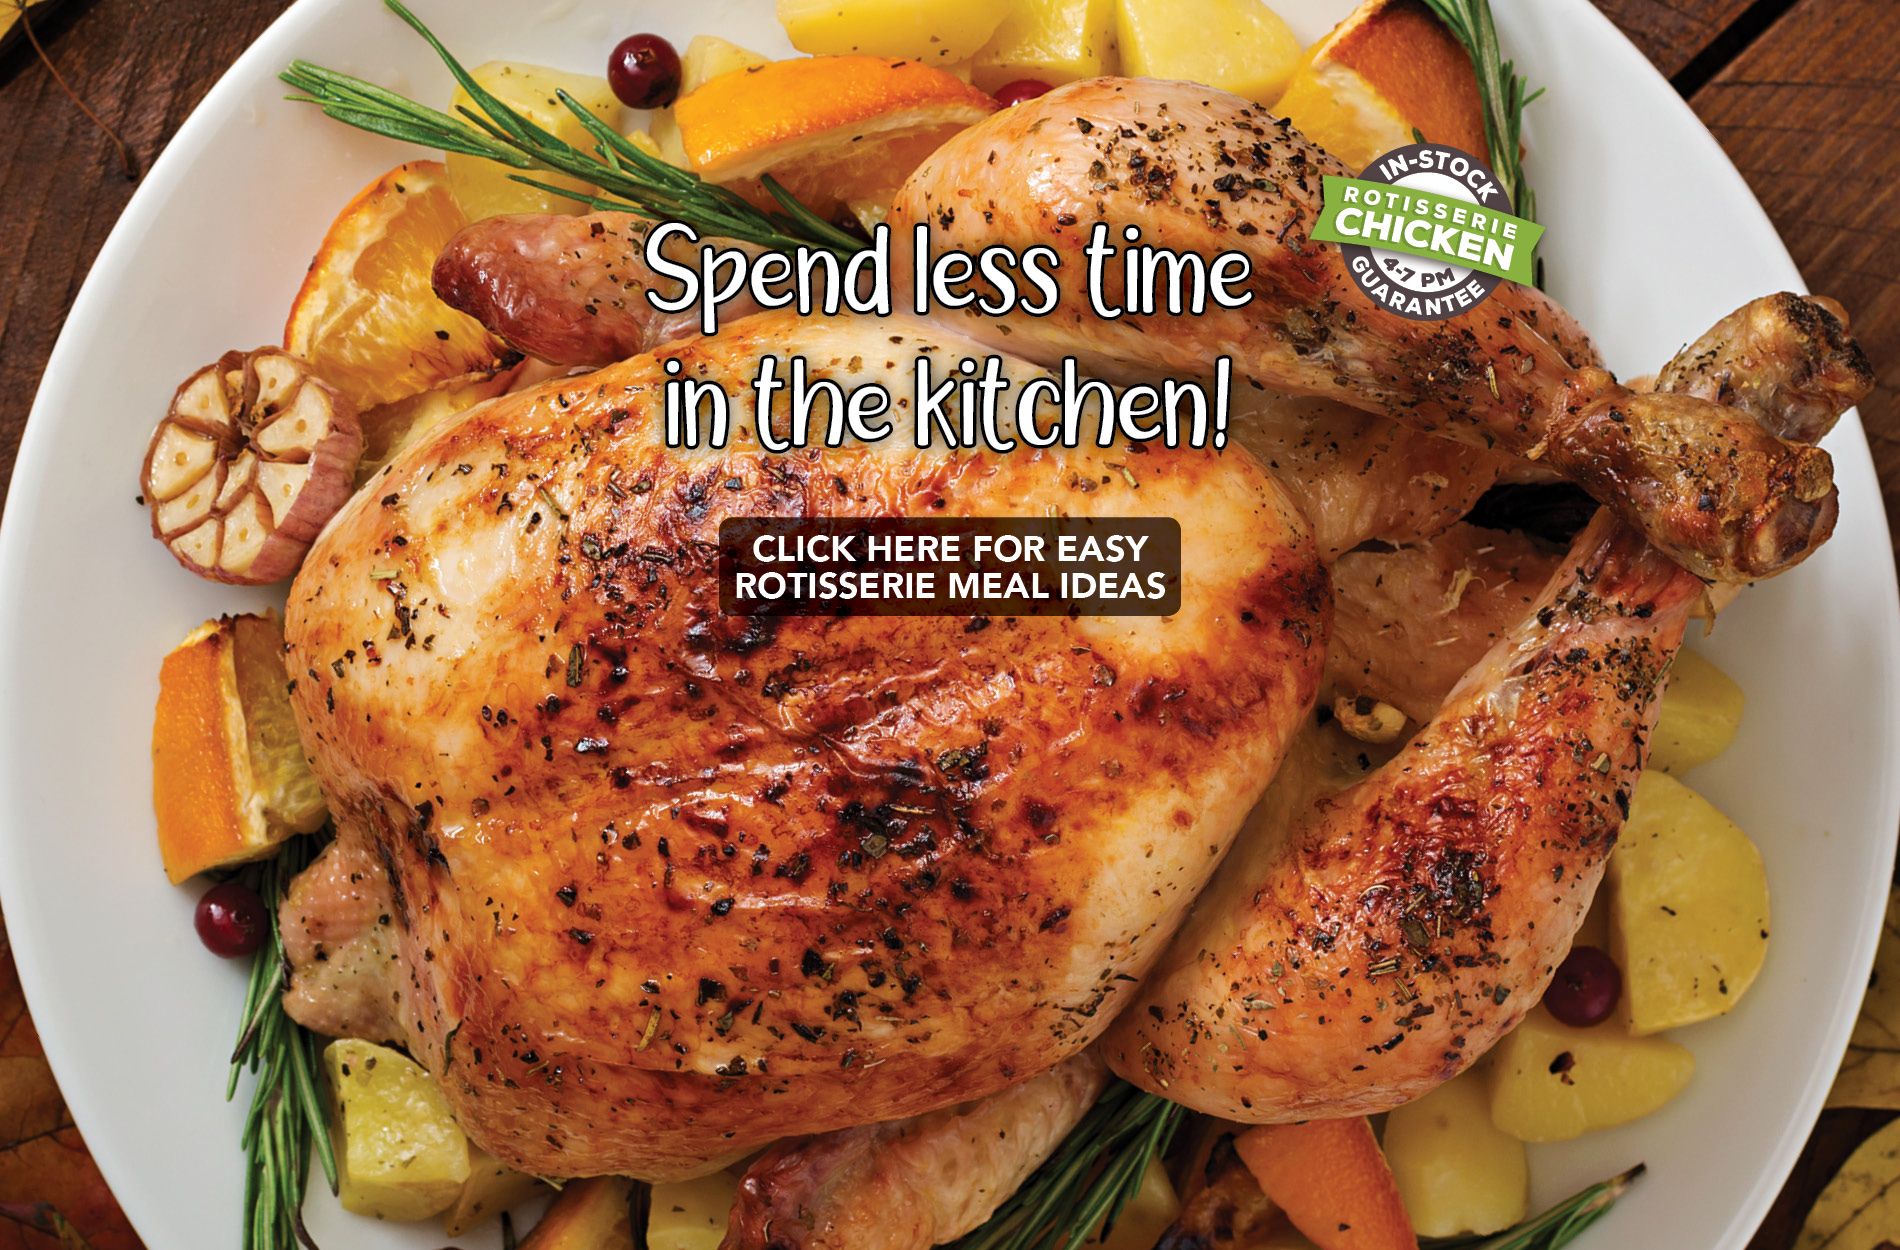 Rotisserie Chicken Meal Ideas